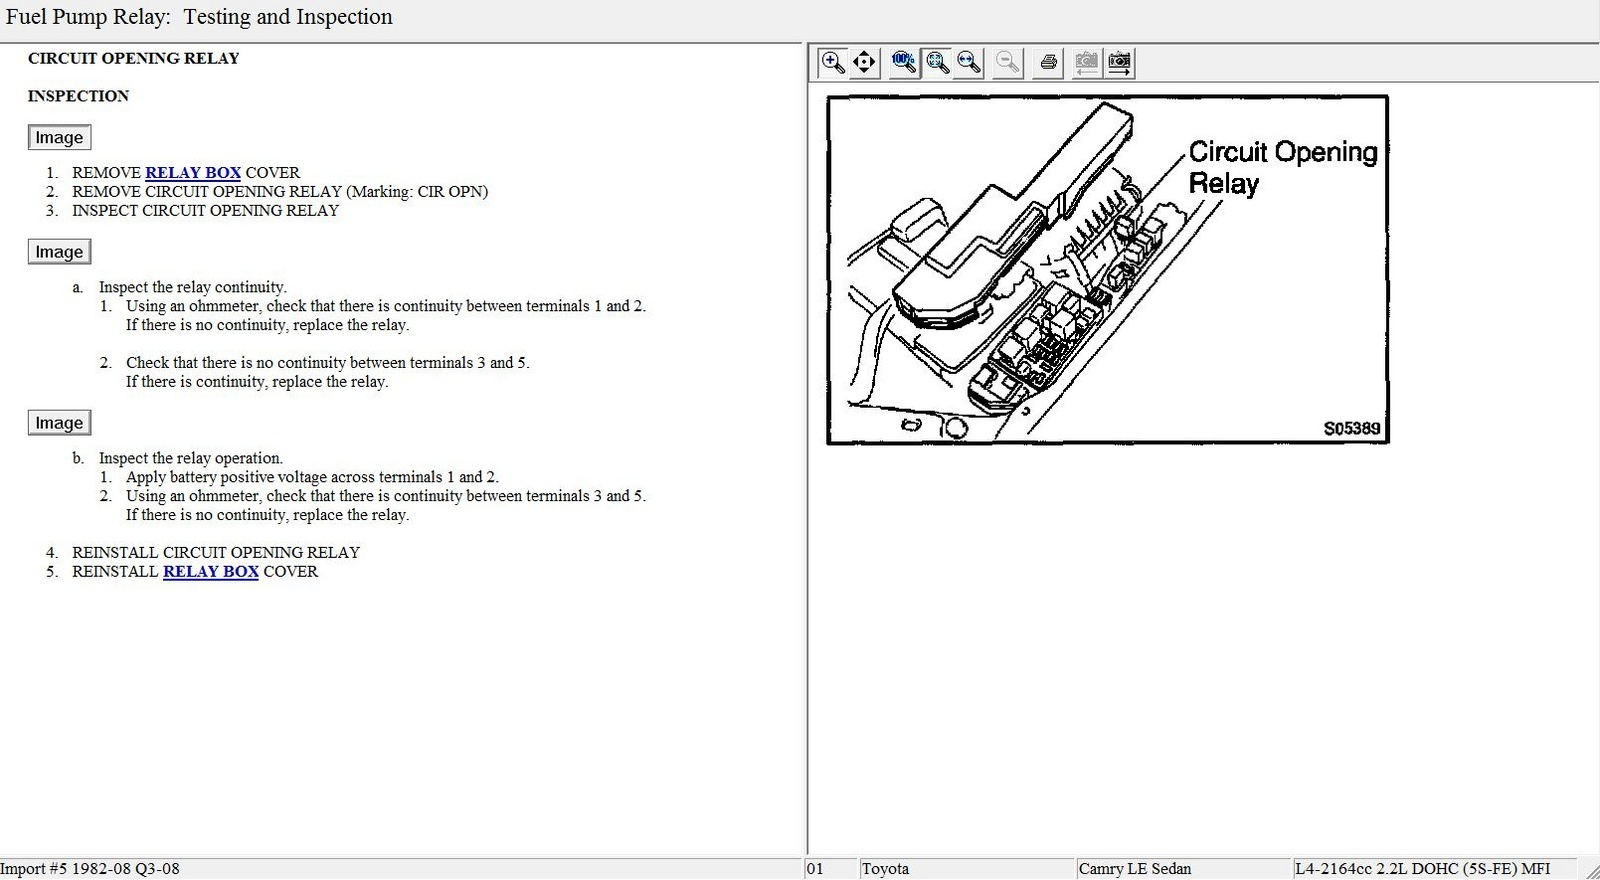 2003 Camry Fuel Pump Wiring Schematic Modern Design Of 2001 S10 Harness And Accord Local Listings From Fuse Diagram Rh 12 52 Shareplm De Ford Connector Hot